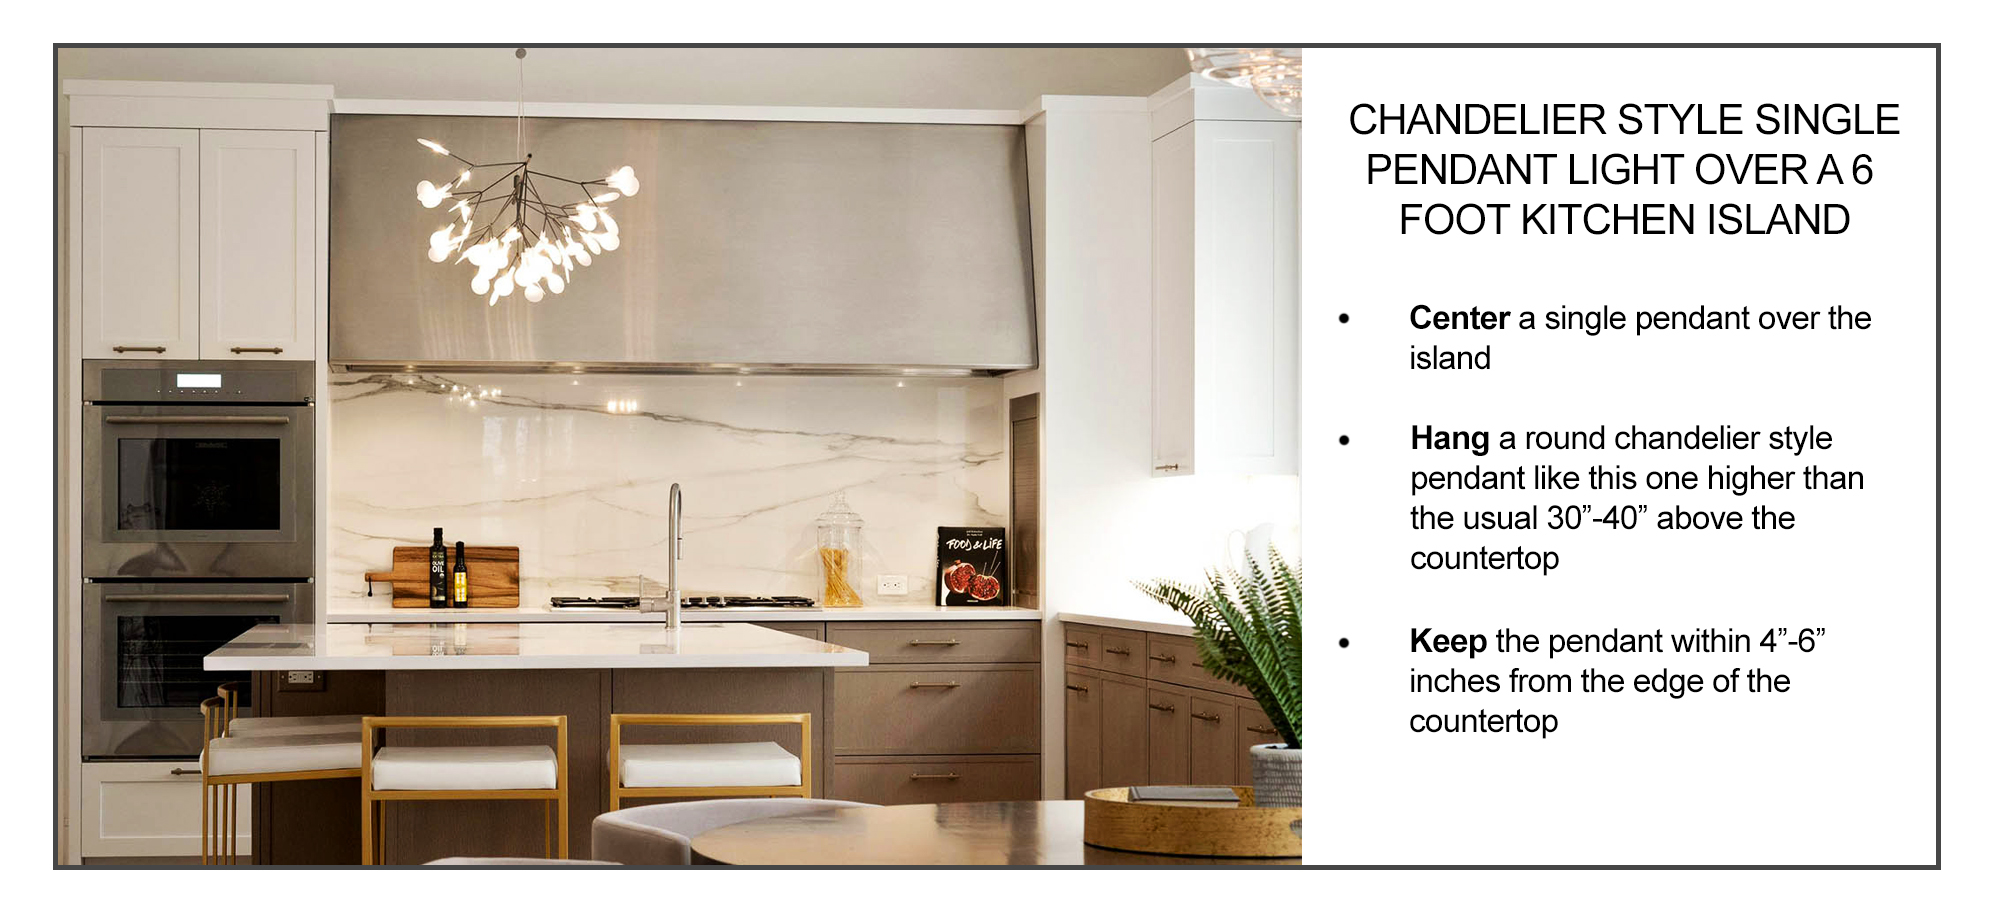 how to hang a single pendant light over a kitchen island inforgraphic